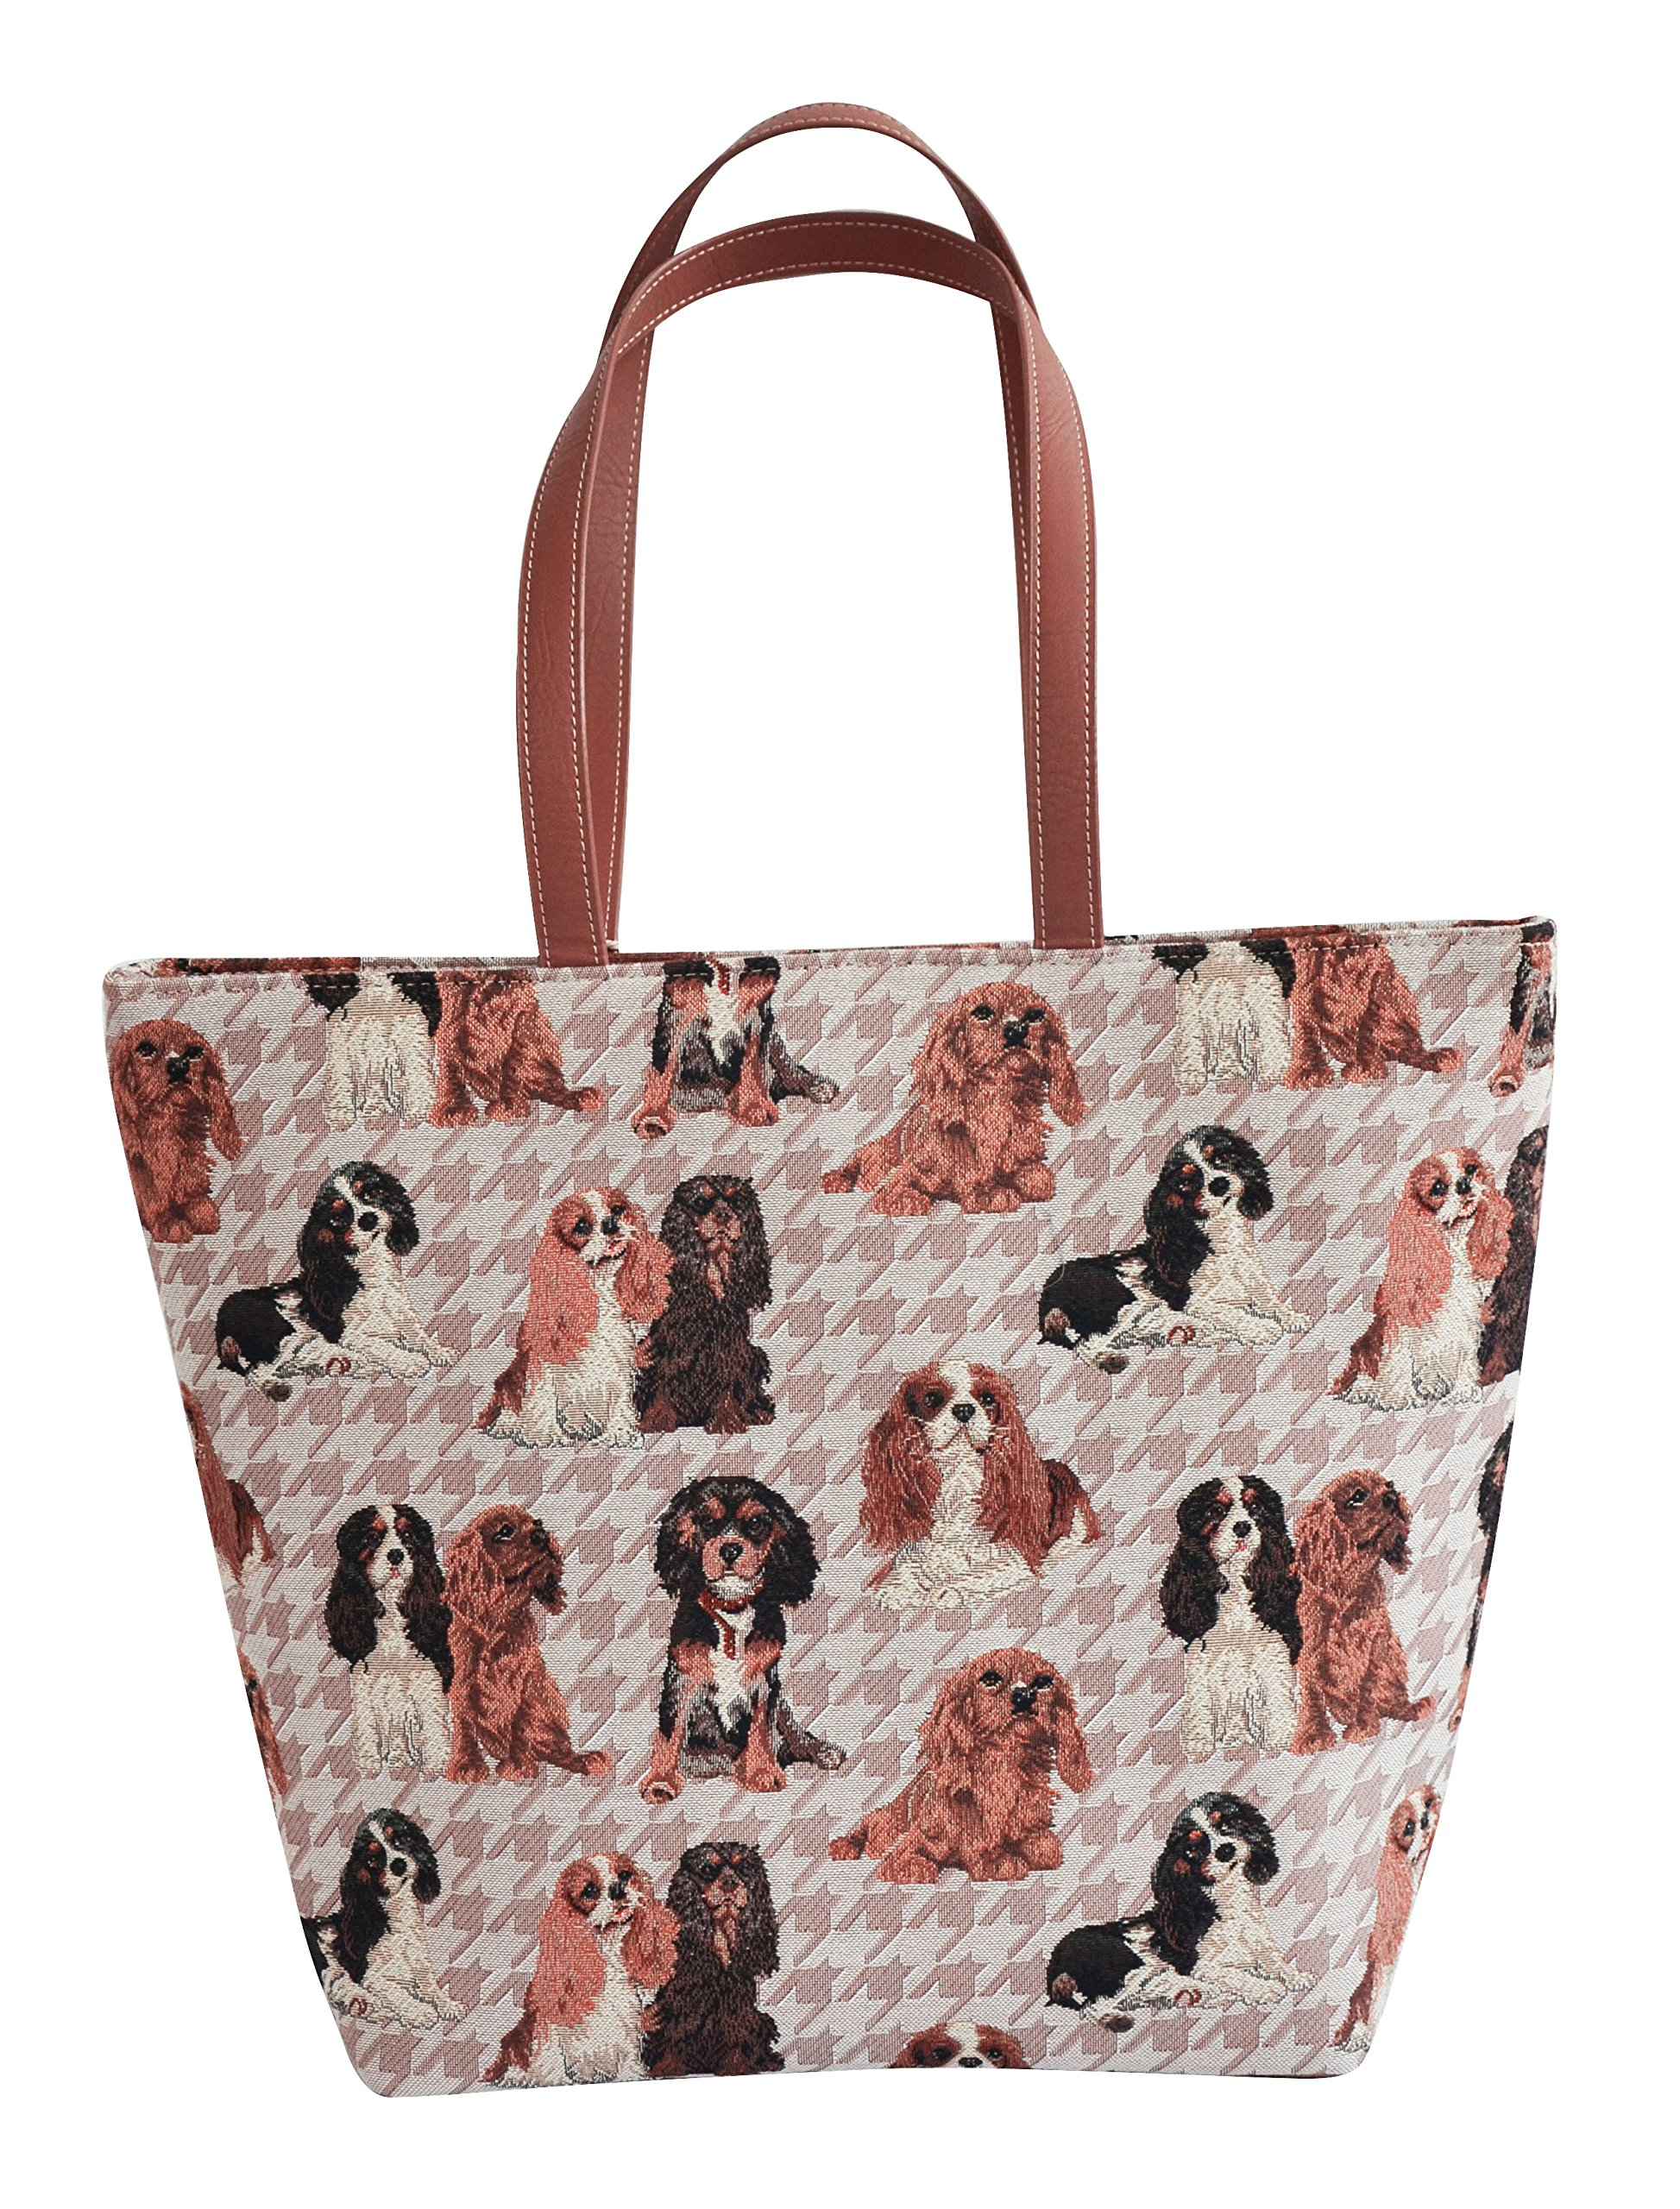 Signare Women's Tapestry Shoulder Tote Handbag, Travel Handbags for Shopper, Daily Purse Tote Bag with Cavalier King Charles Spaniel Dog (SHOU-KGCS)